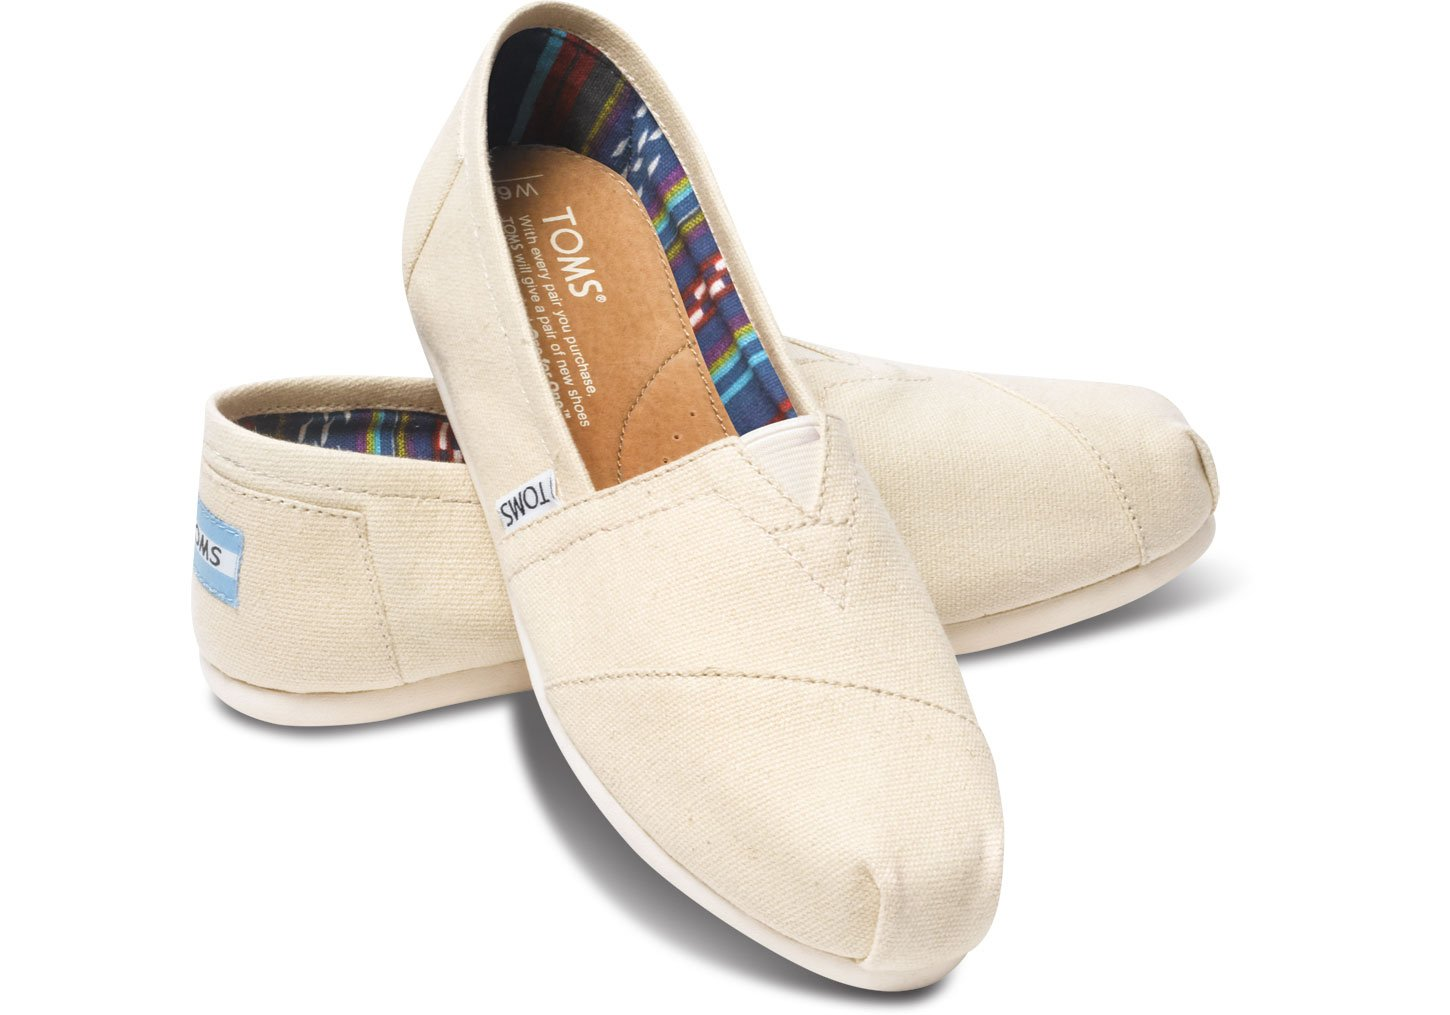 + Toms Products. Browse, shop and read reviews for Toms products online. FREE Delivery Across Oman. FREE Returns. 5M+ Products.